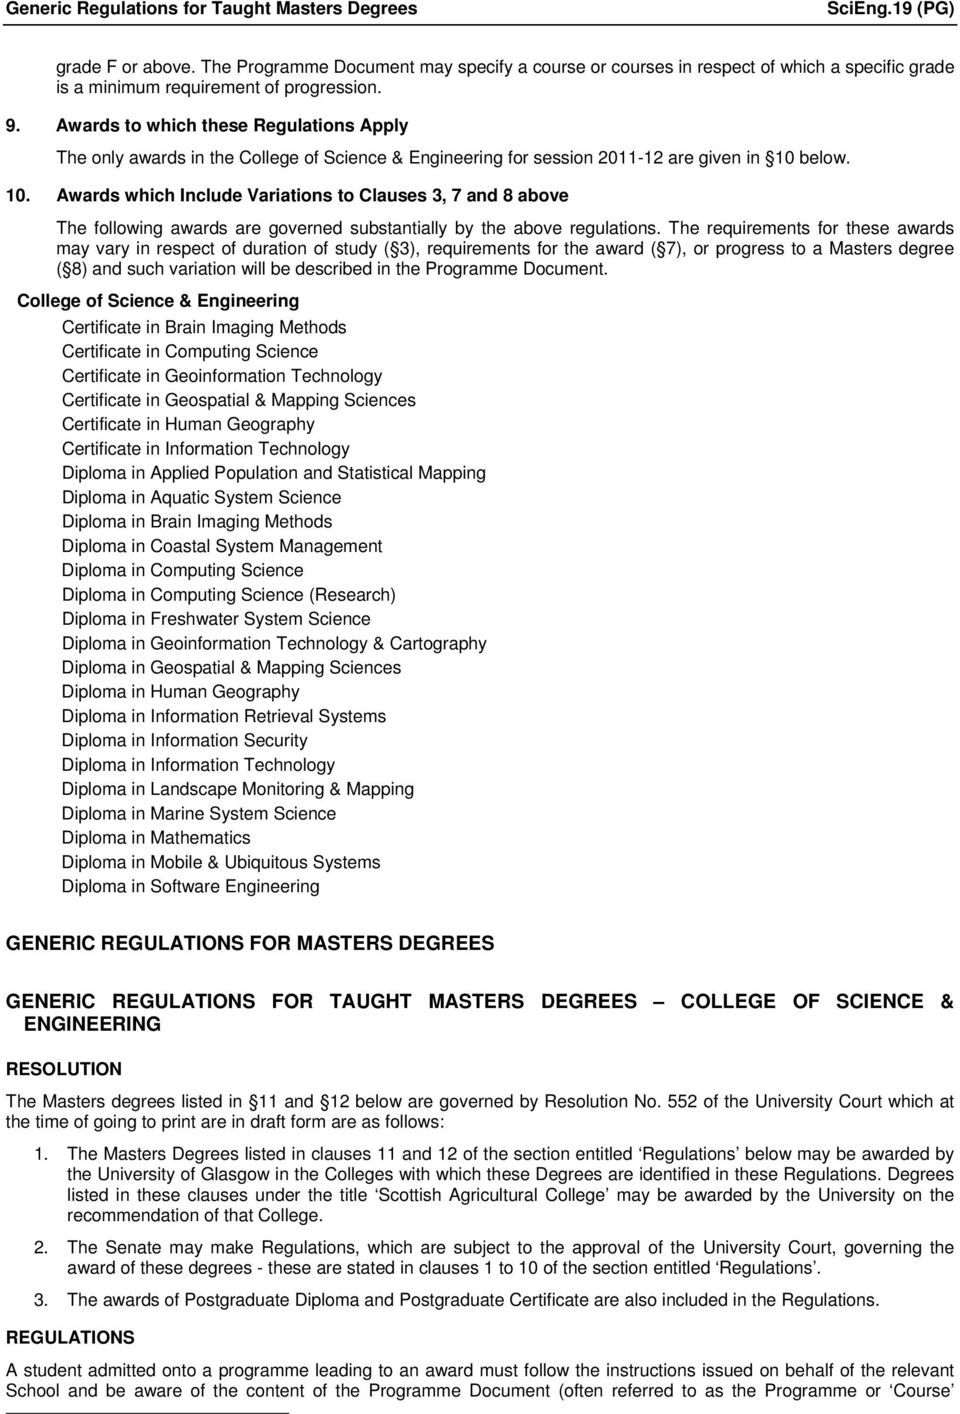 Awards to which these Regulations Apply The only awards in the College of Science & Engineering for session 2011-12 are given in 10